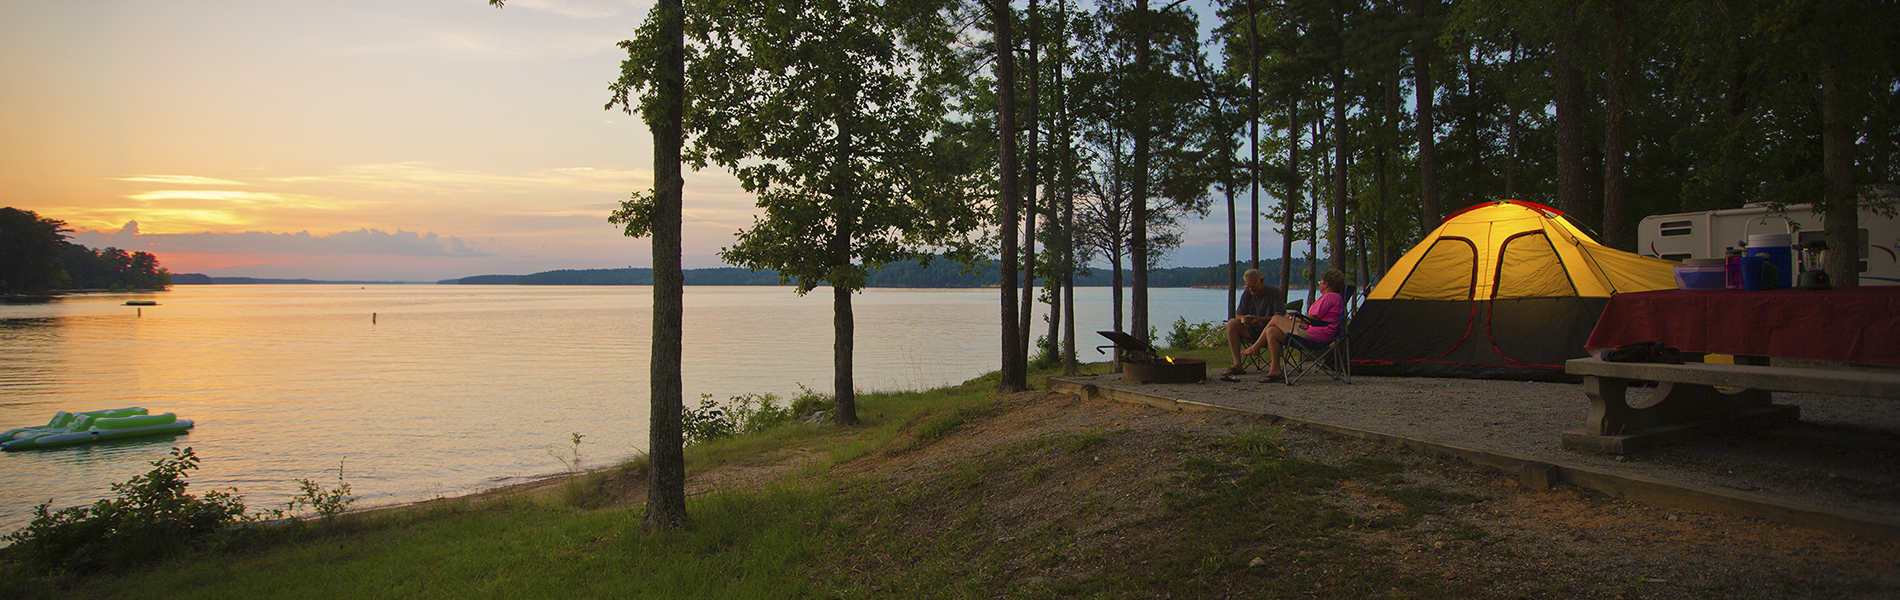 Full hookup campgrounds in georgia